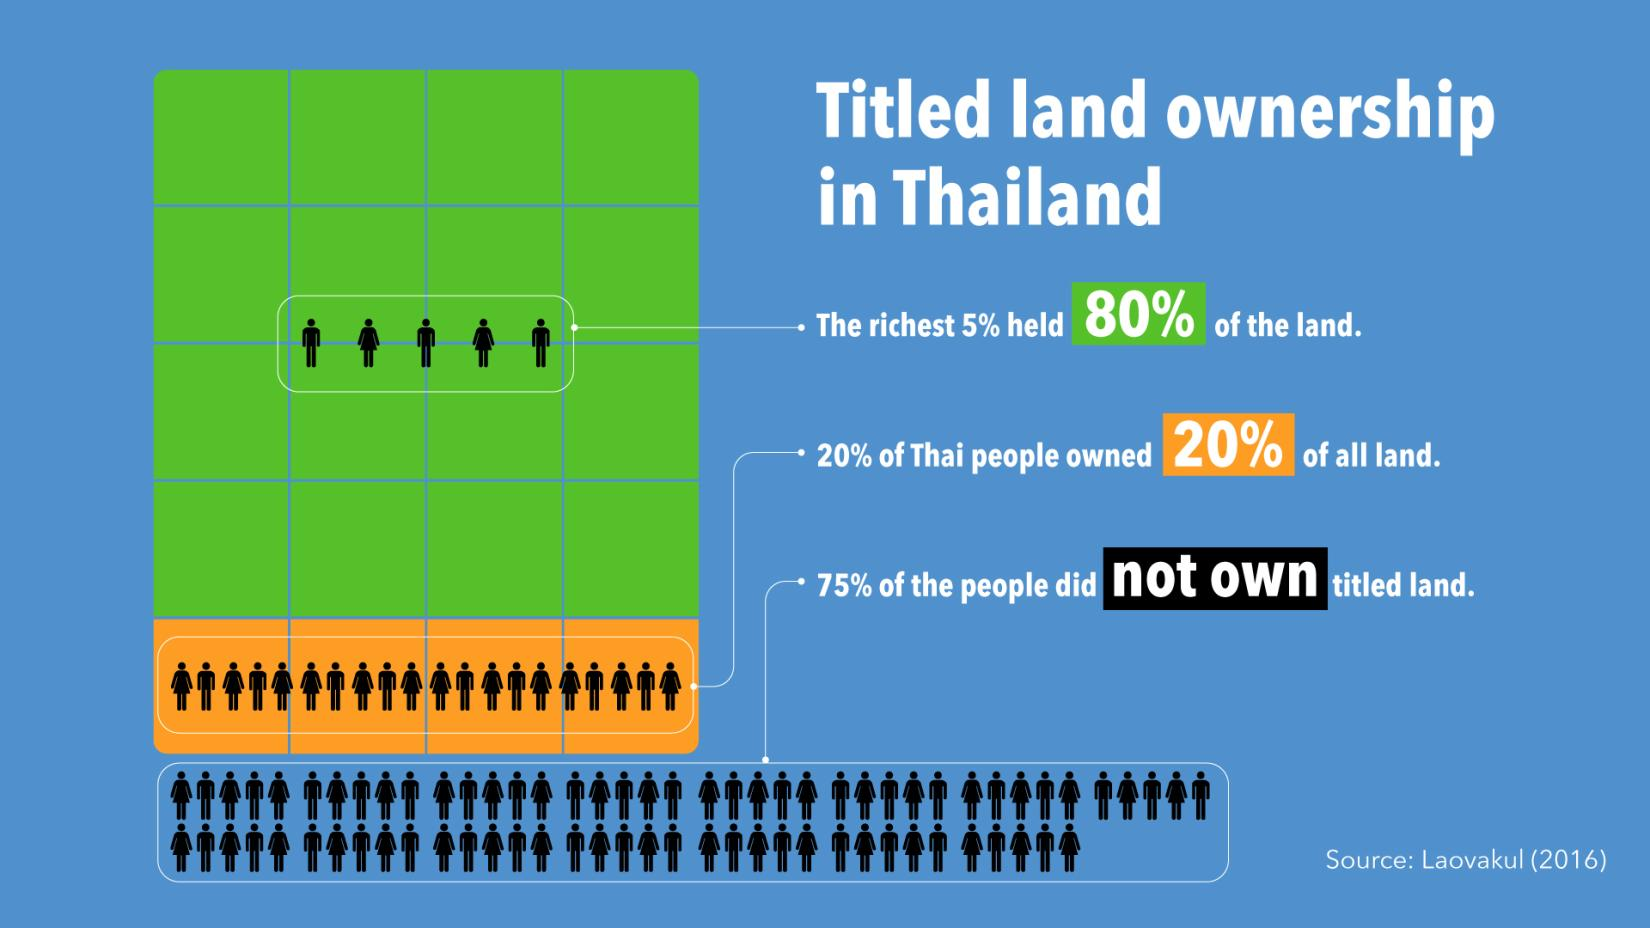 Thailand's inequality in land possession is extremely high for a country at this level of development